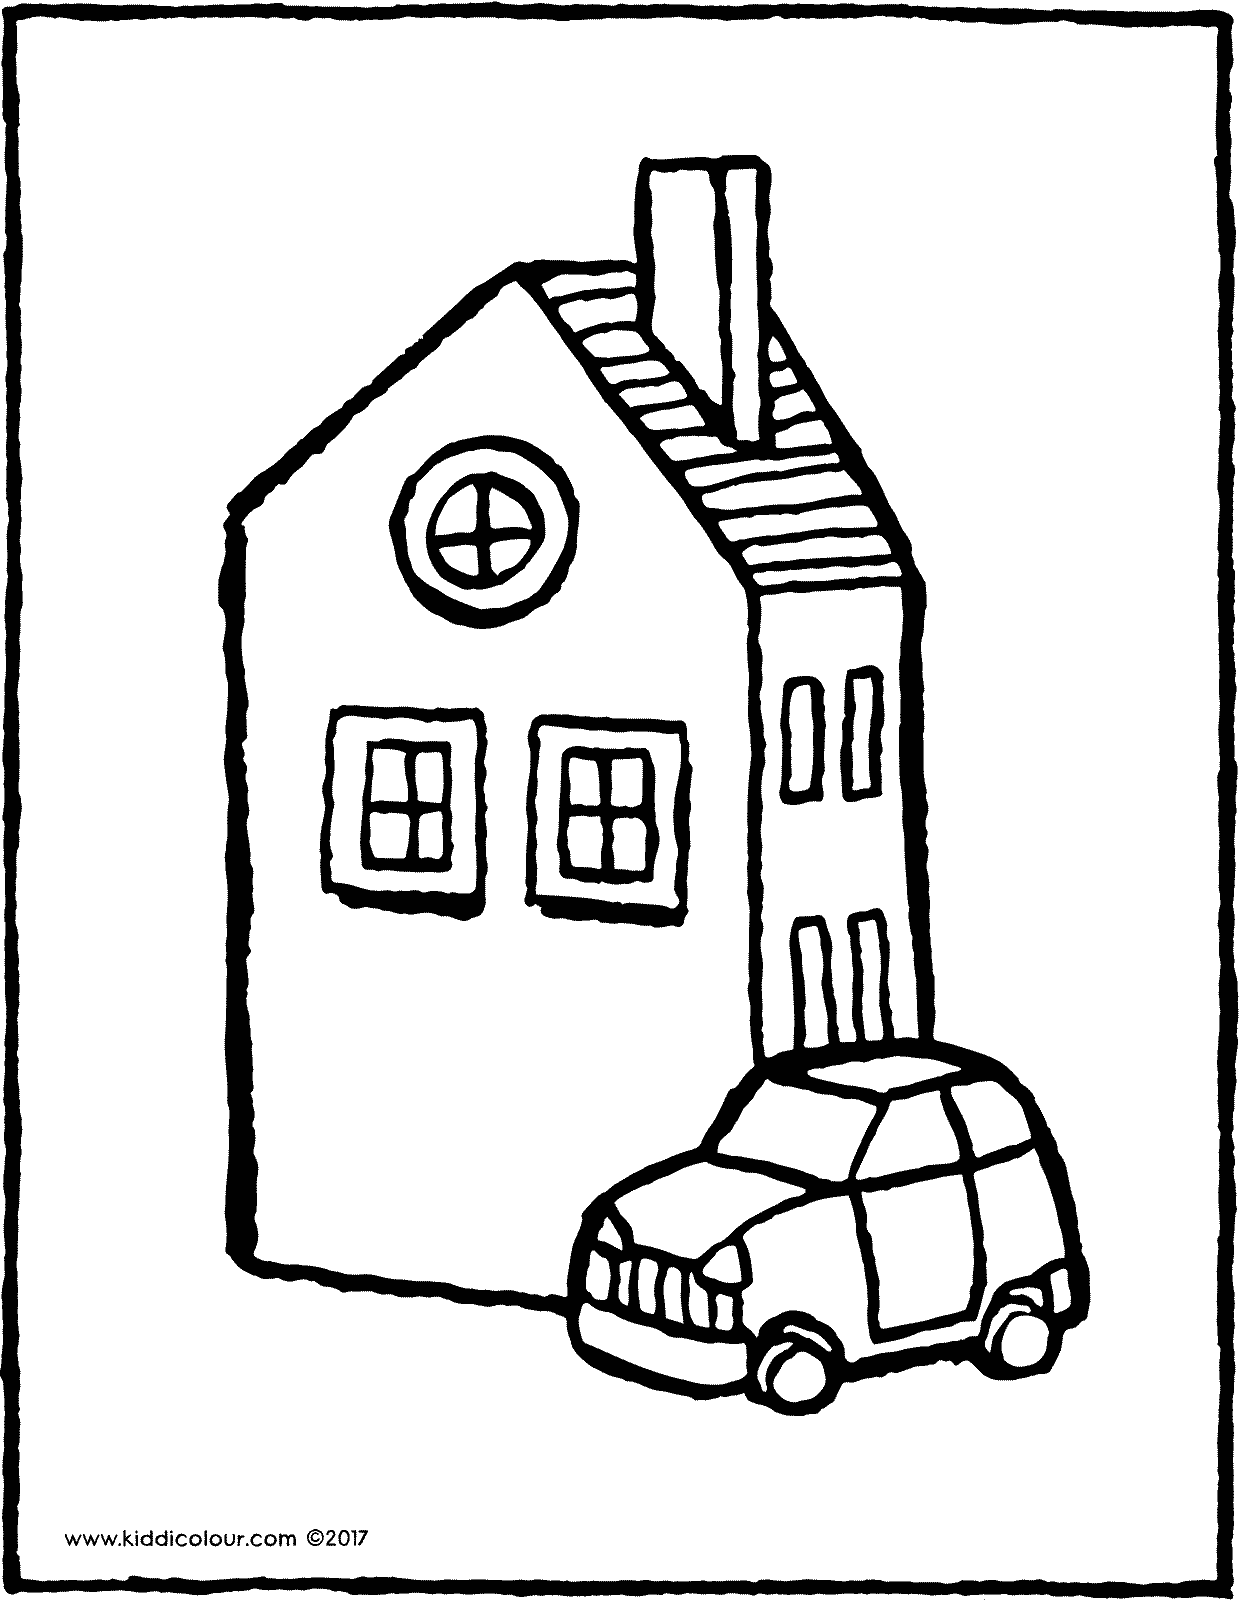 a house with a car - kiddicolour